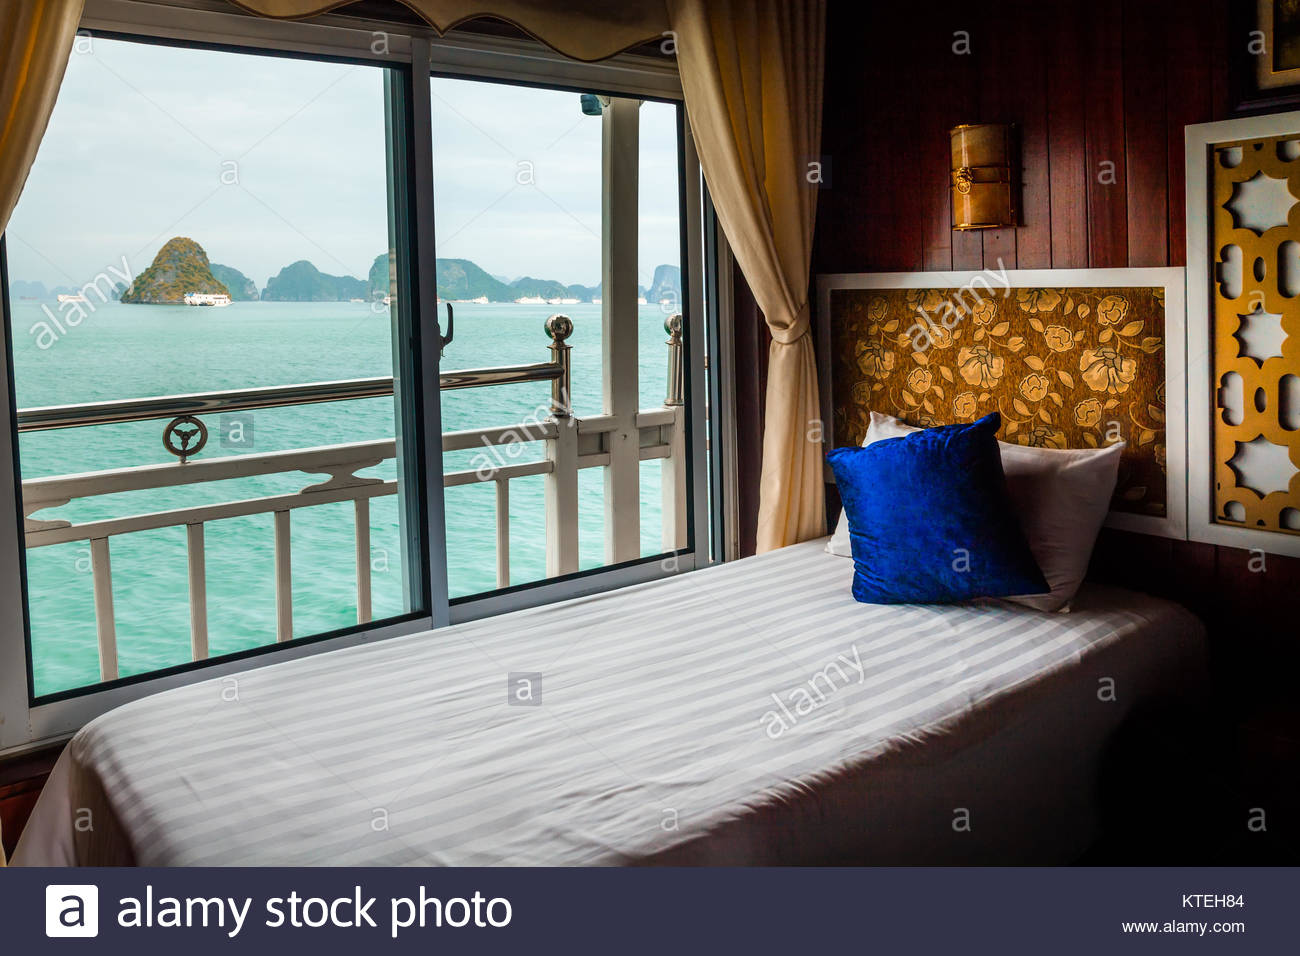 Bed In Cruise Ship Cabin Halong Bay Vietnam Stock Photo Royalty - Cruise ship cabin pictures